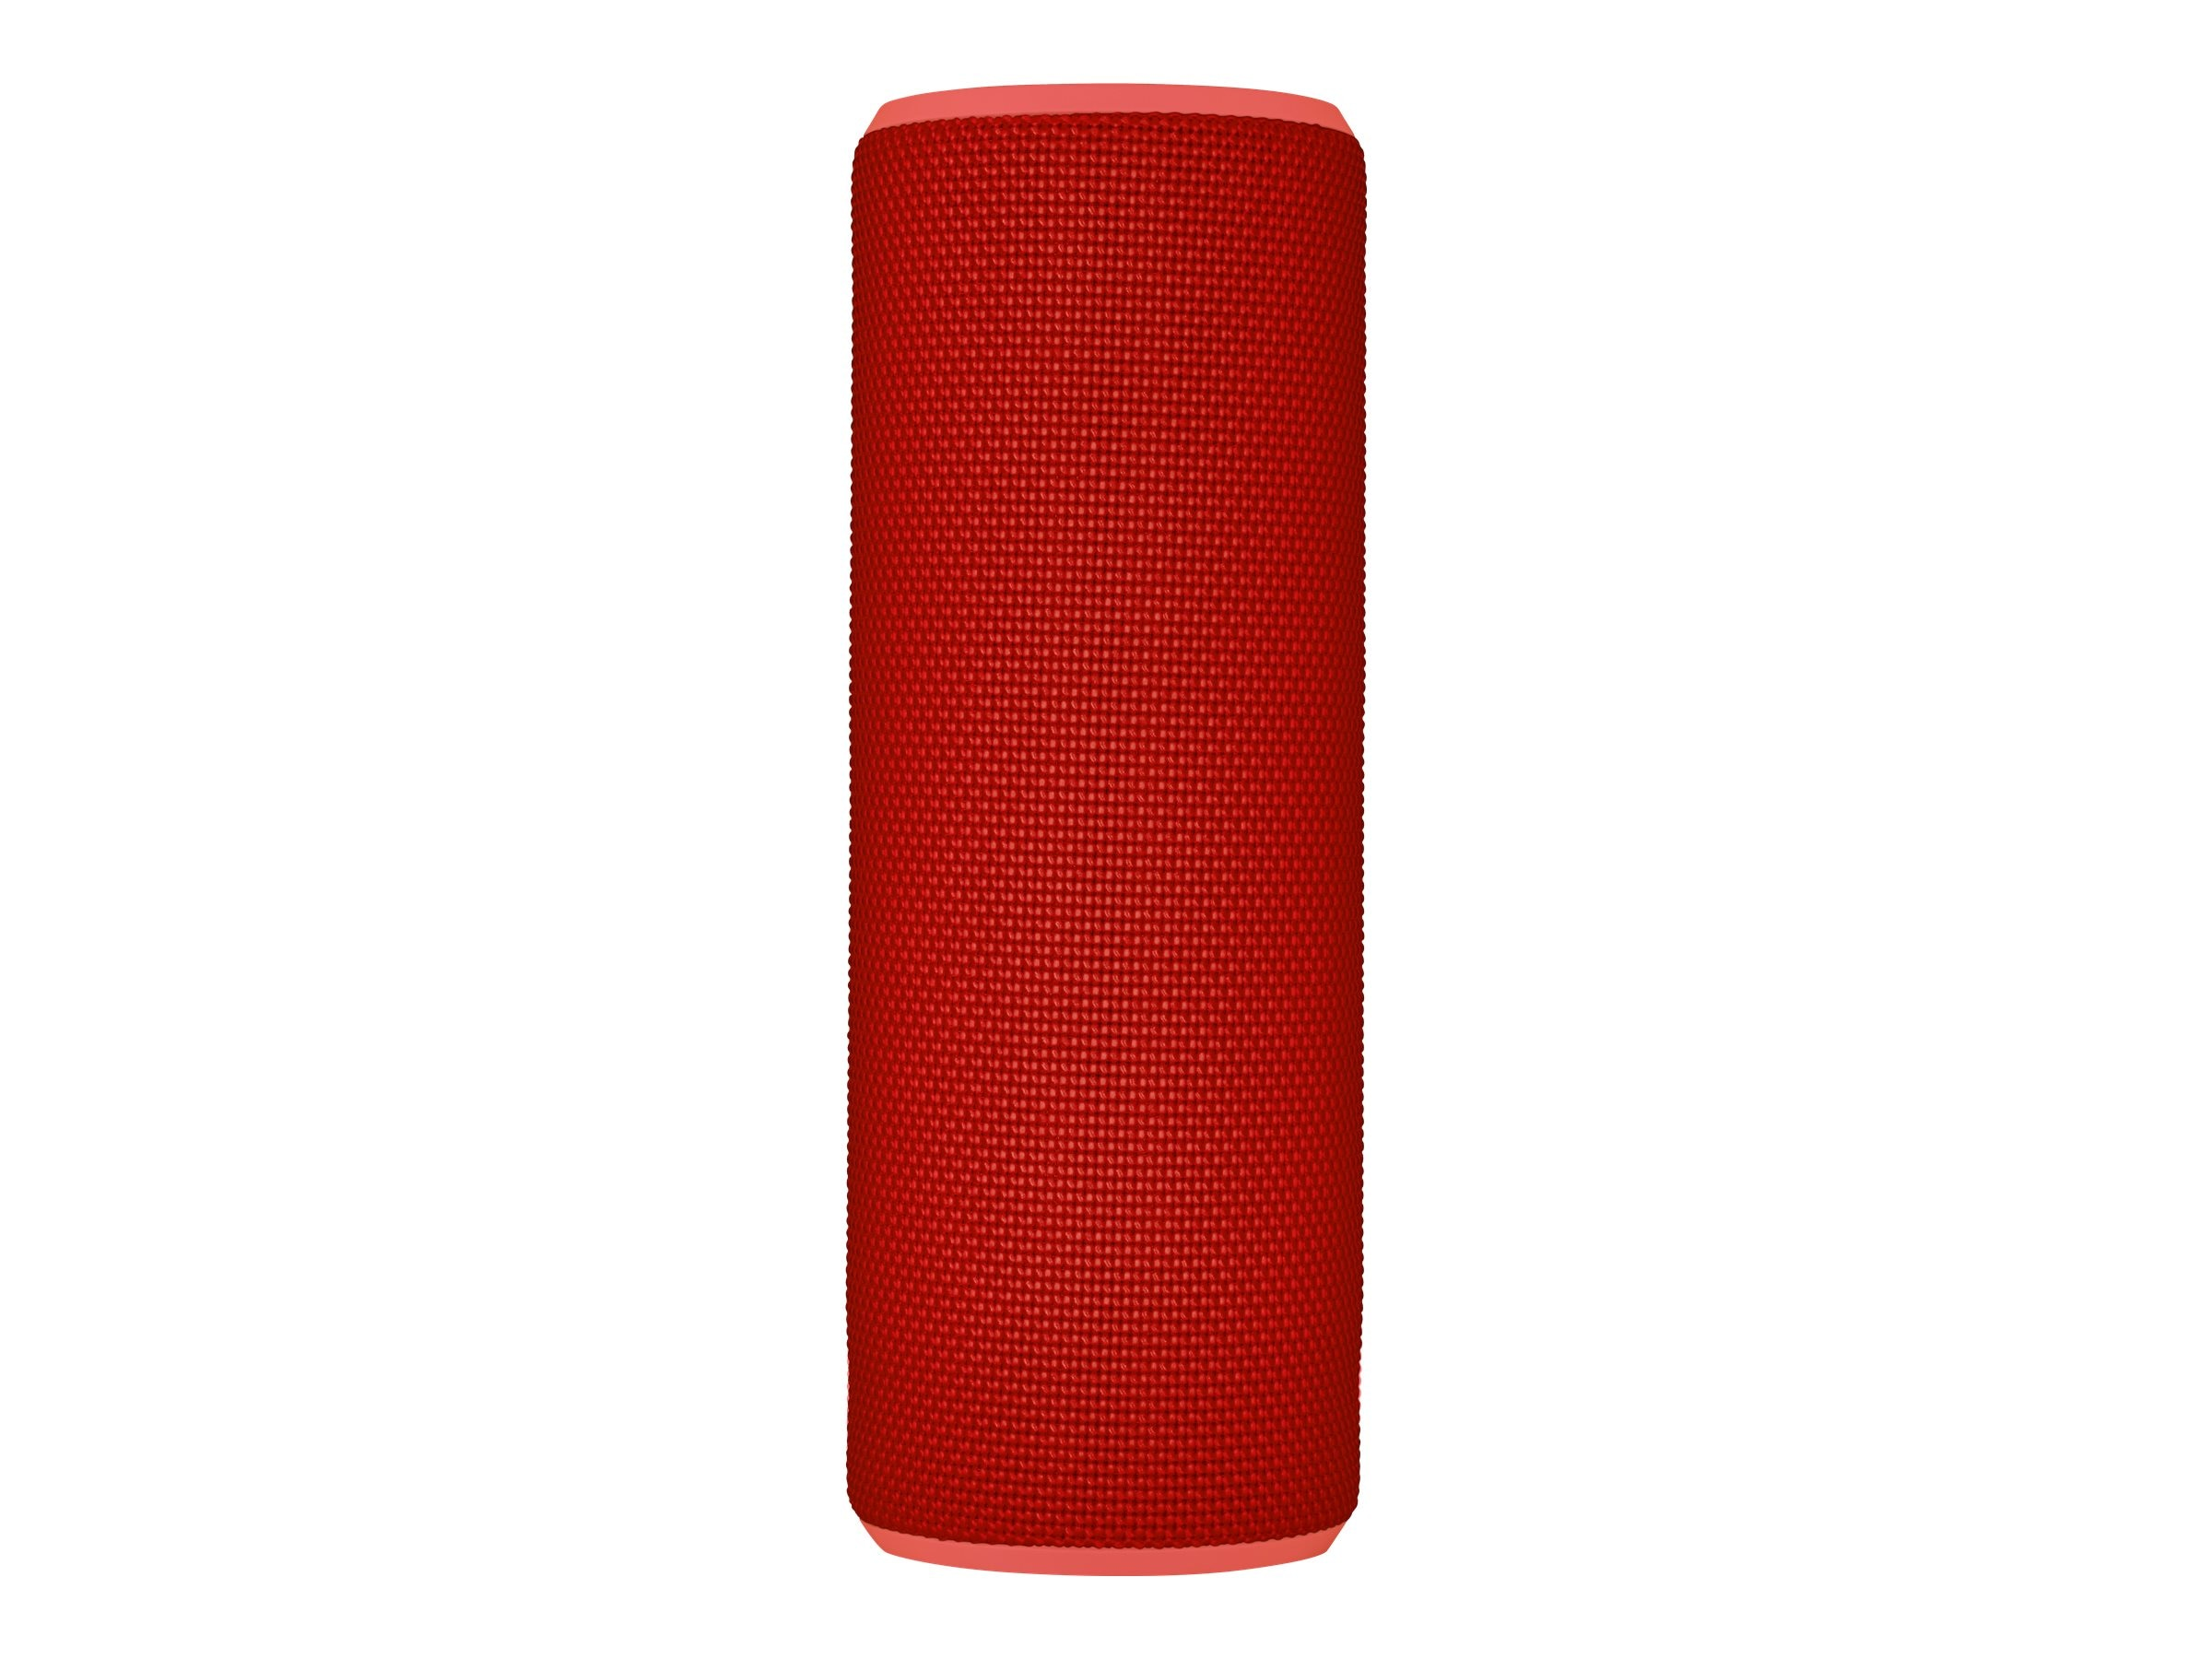 Logitech UE Boom 2 Wireless Speaker, CherryBomb, 984-000554